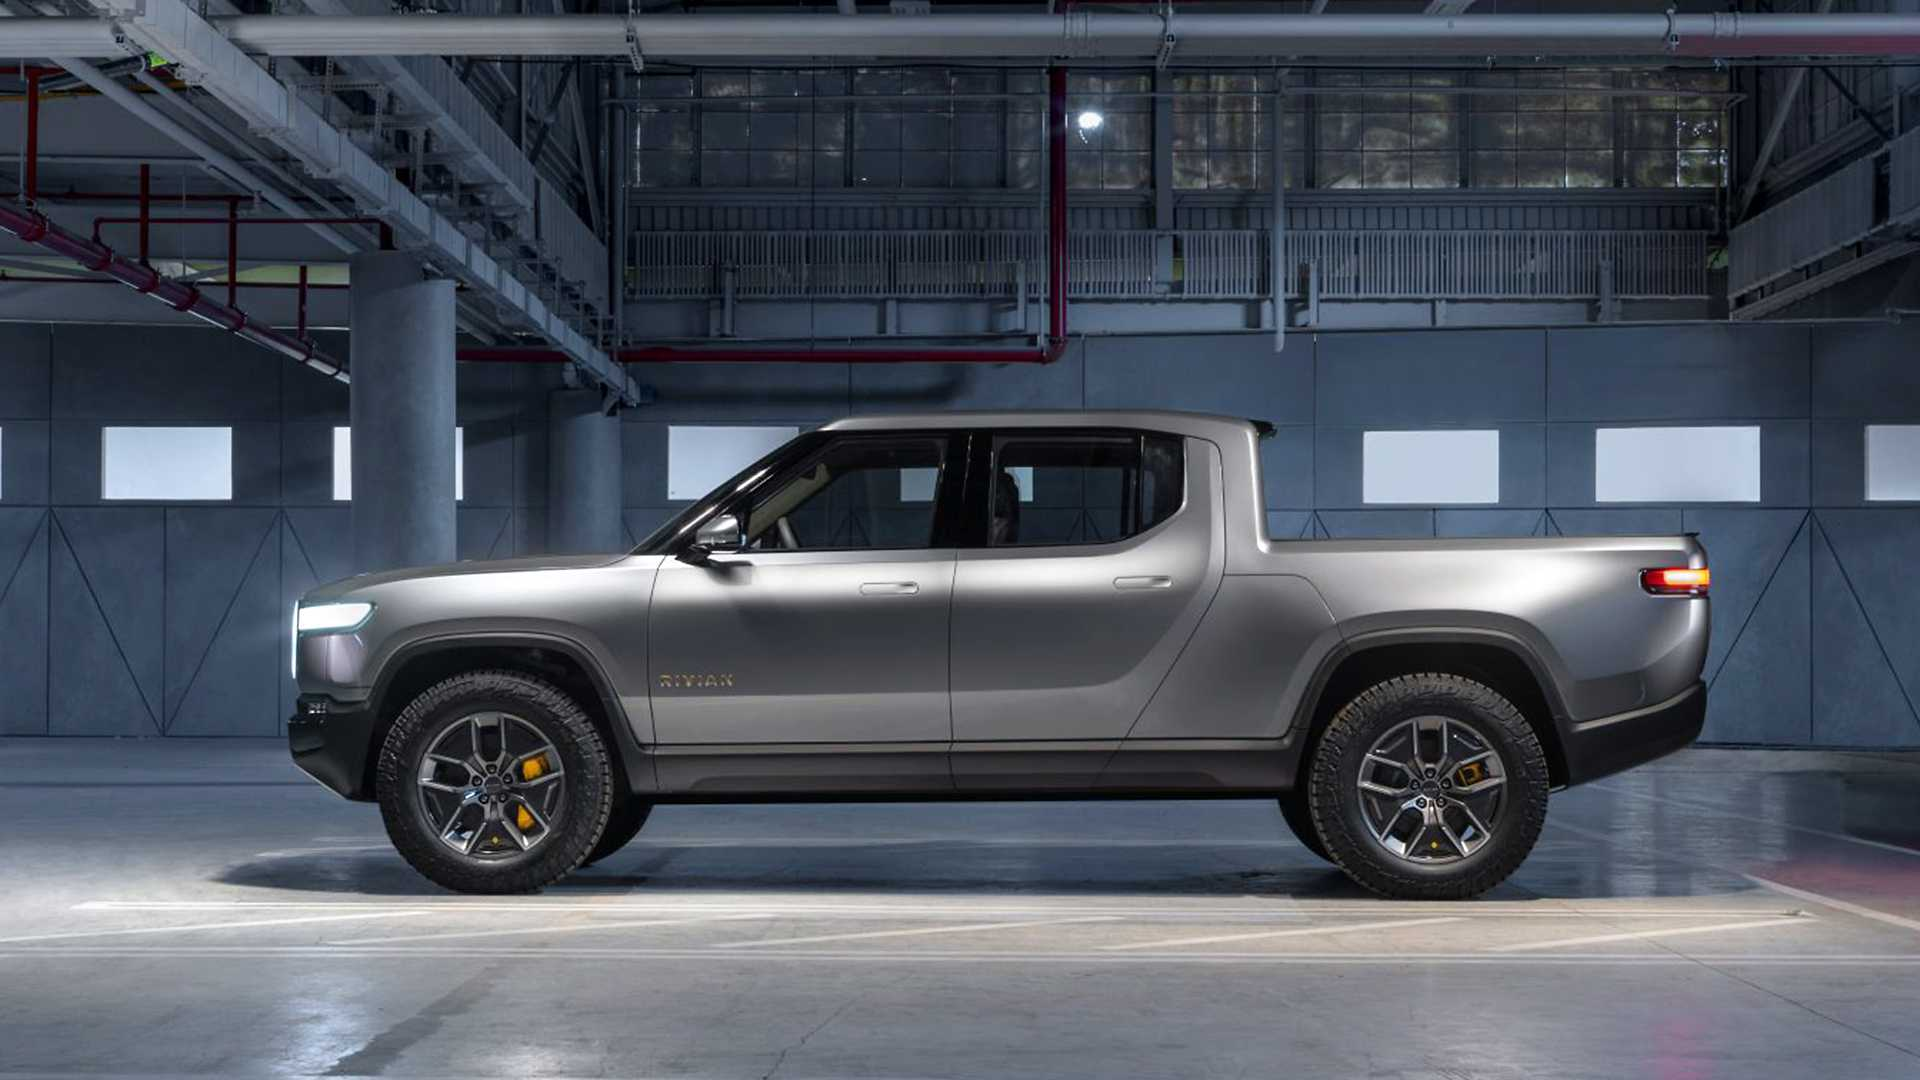 Startup company Rivian introduced the world to its concept truck named the R1T in 2019, and it has now officially entered mass production in Illinois.